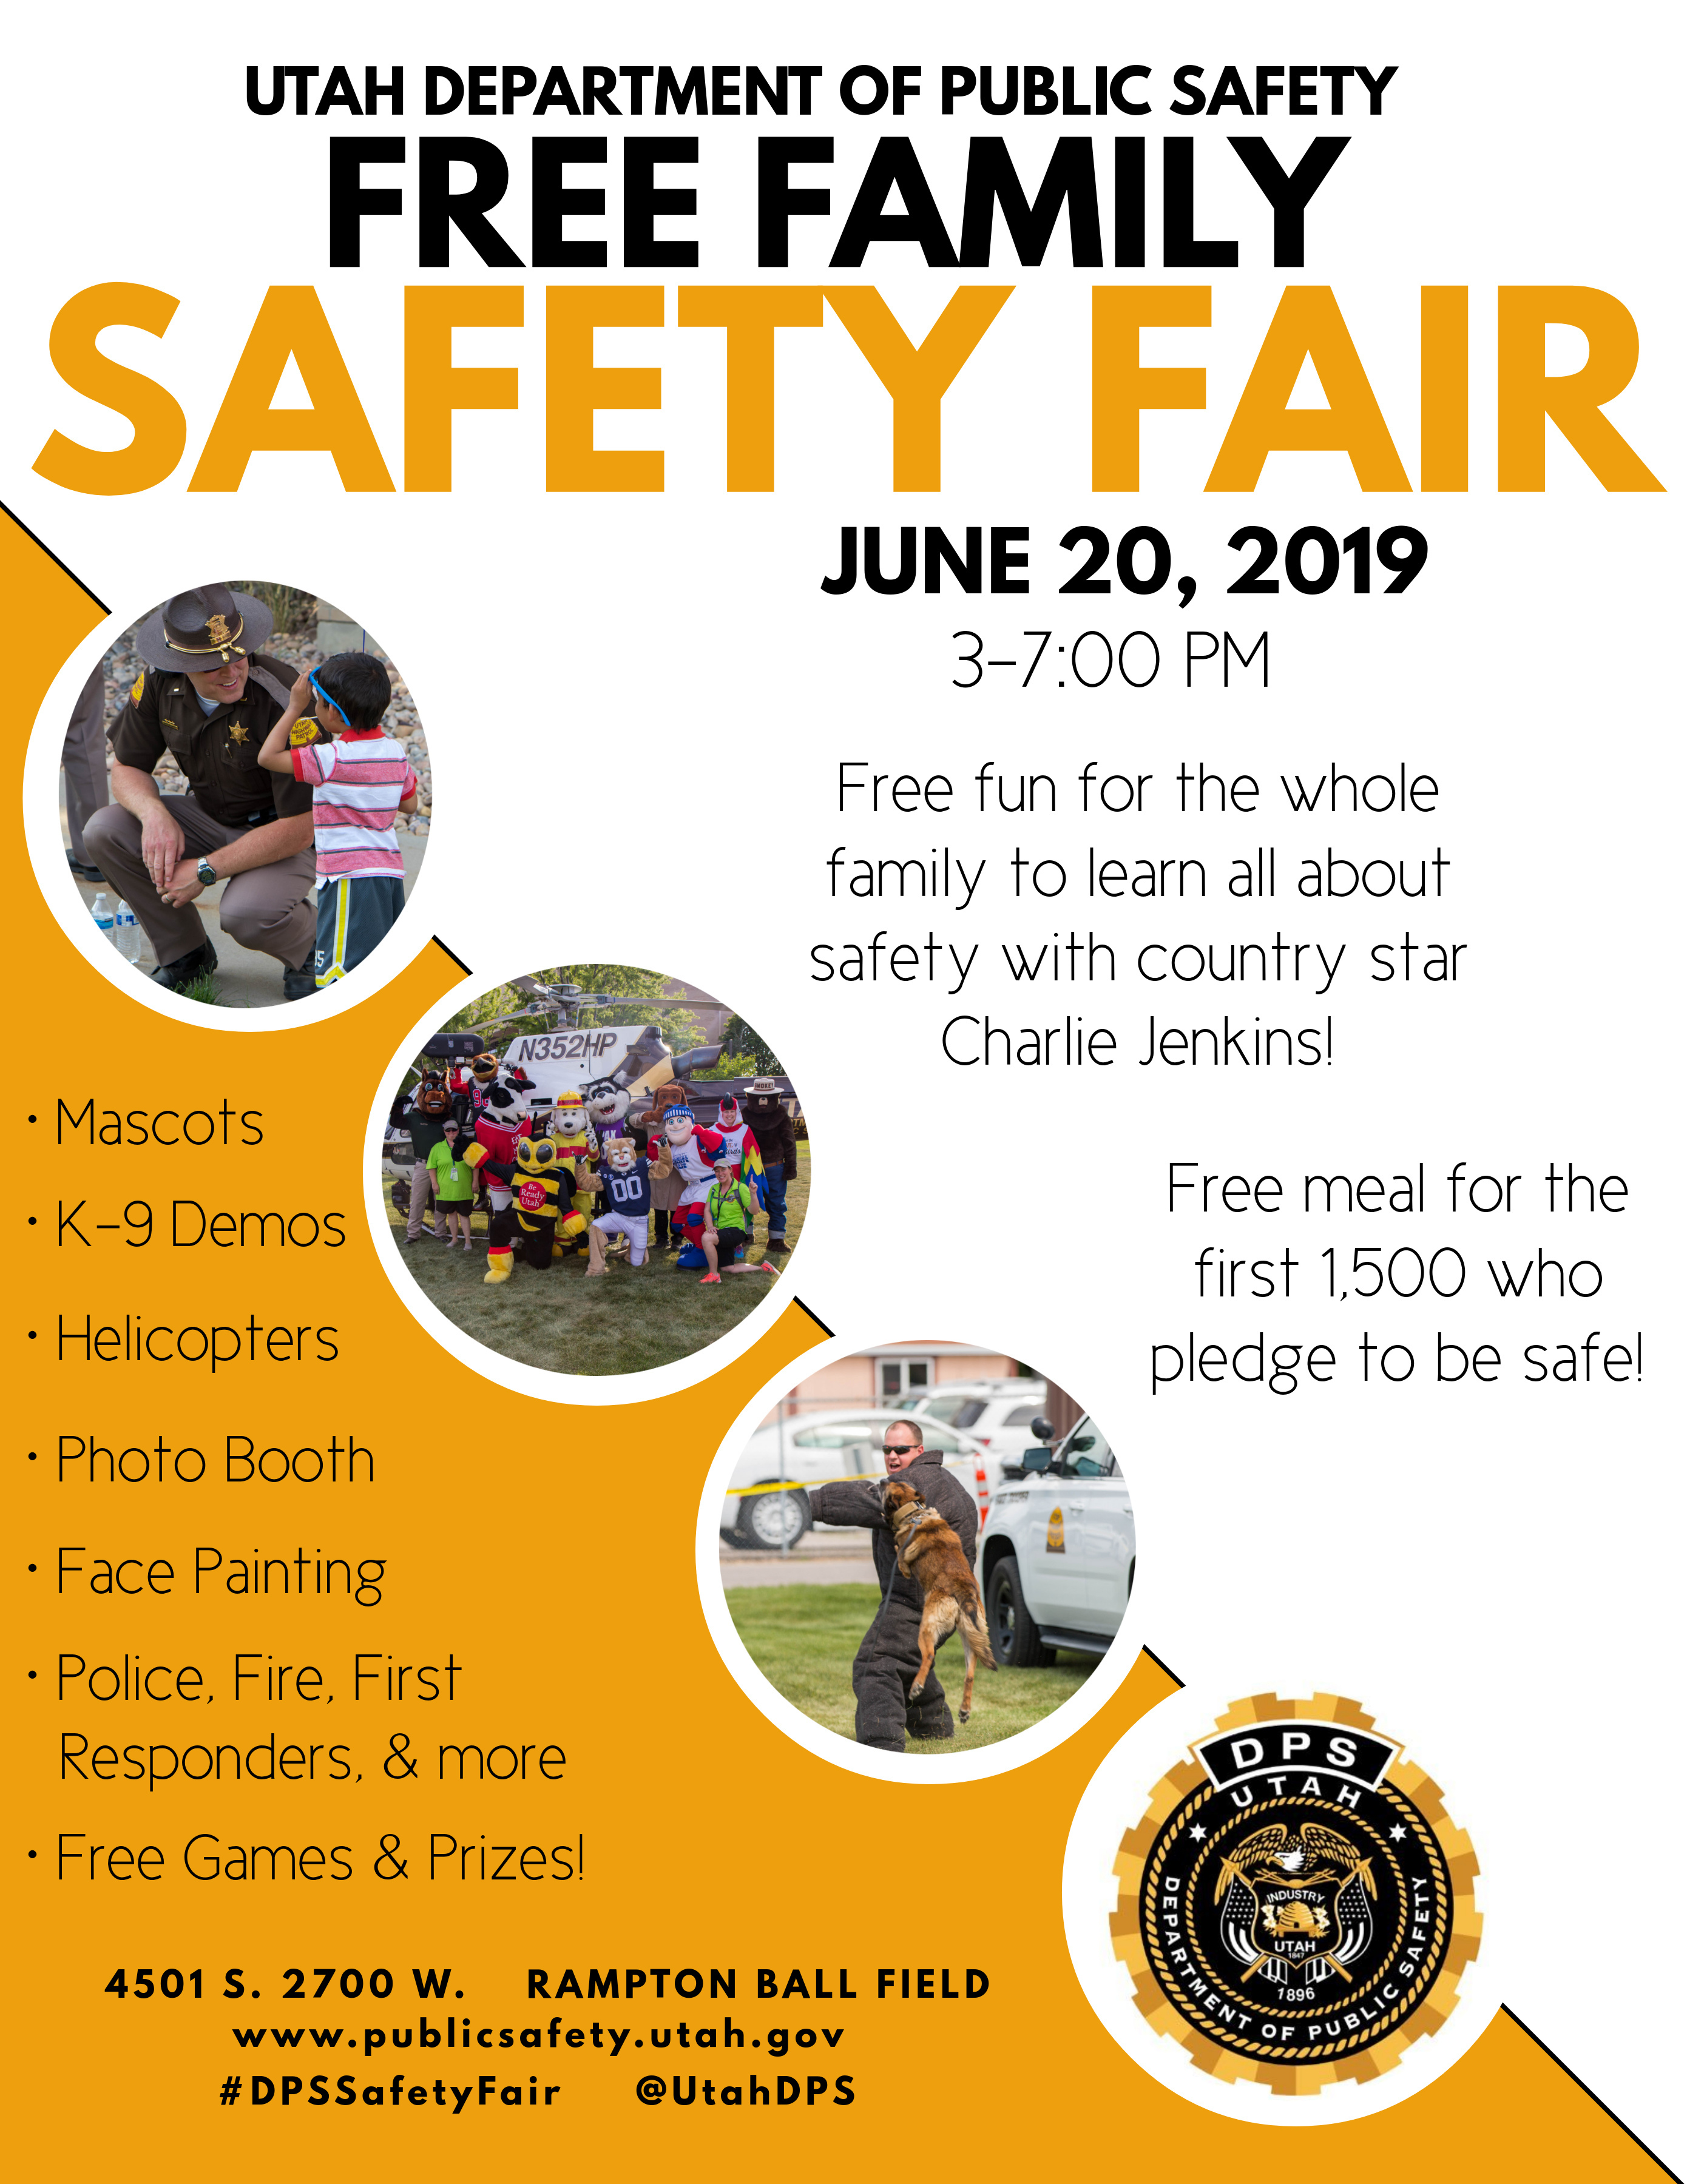 2019 DPS Safety Fair June 20 3-7 pm